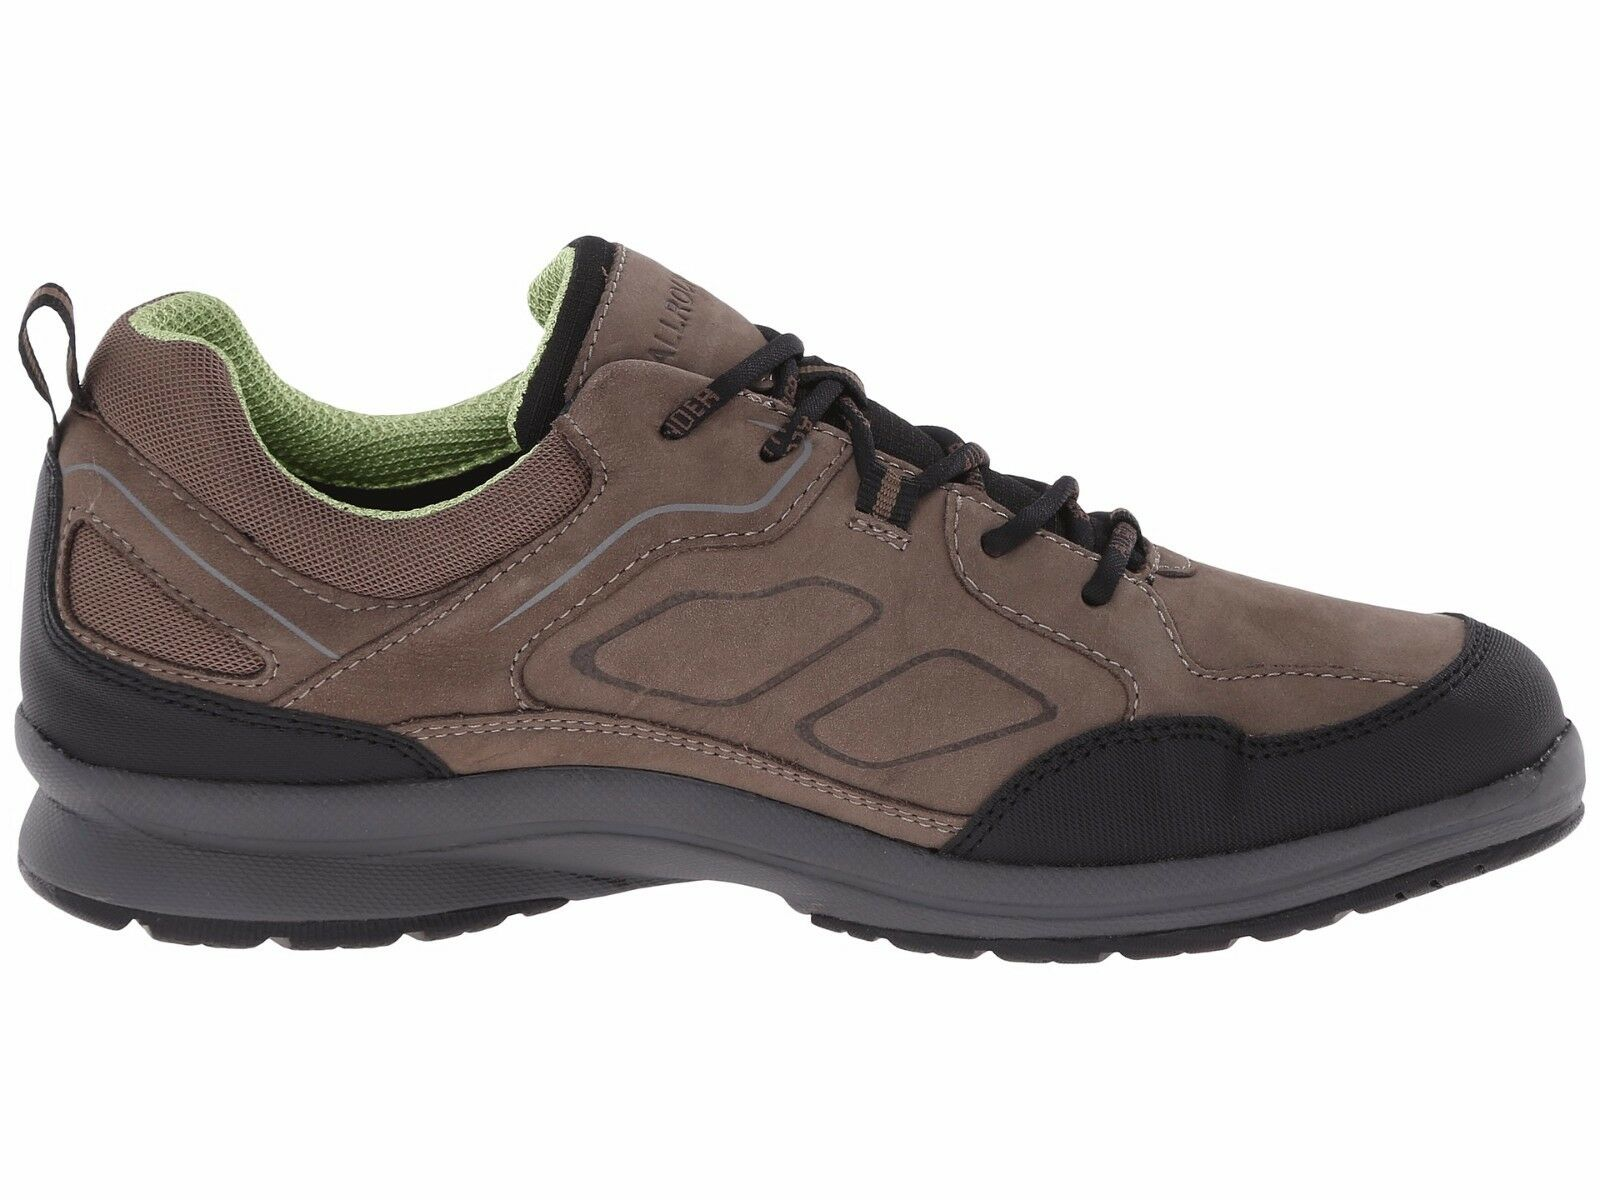 ALLROUNDER BY MEPHISTO Femme DASCHA-TEX WATERPROOF WALKING COMFORT Chaussures